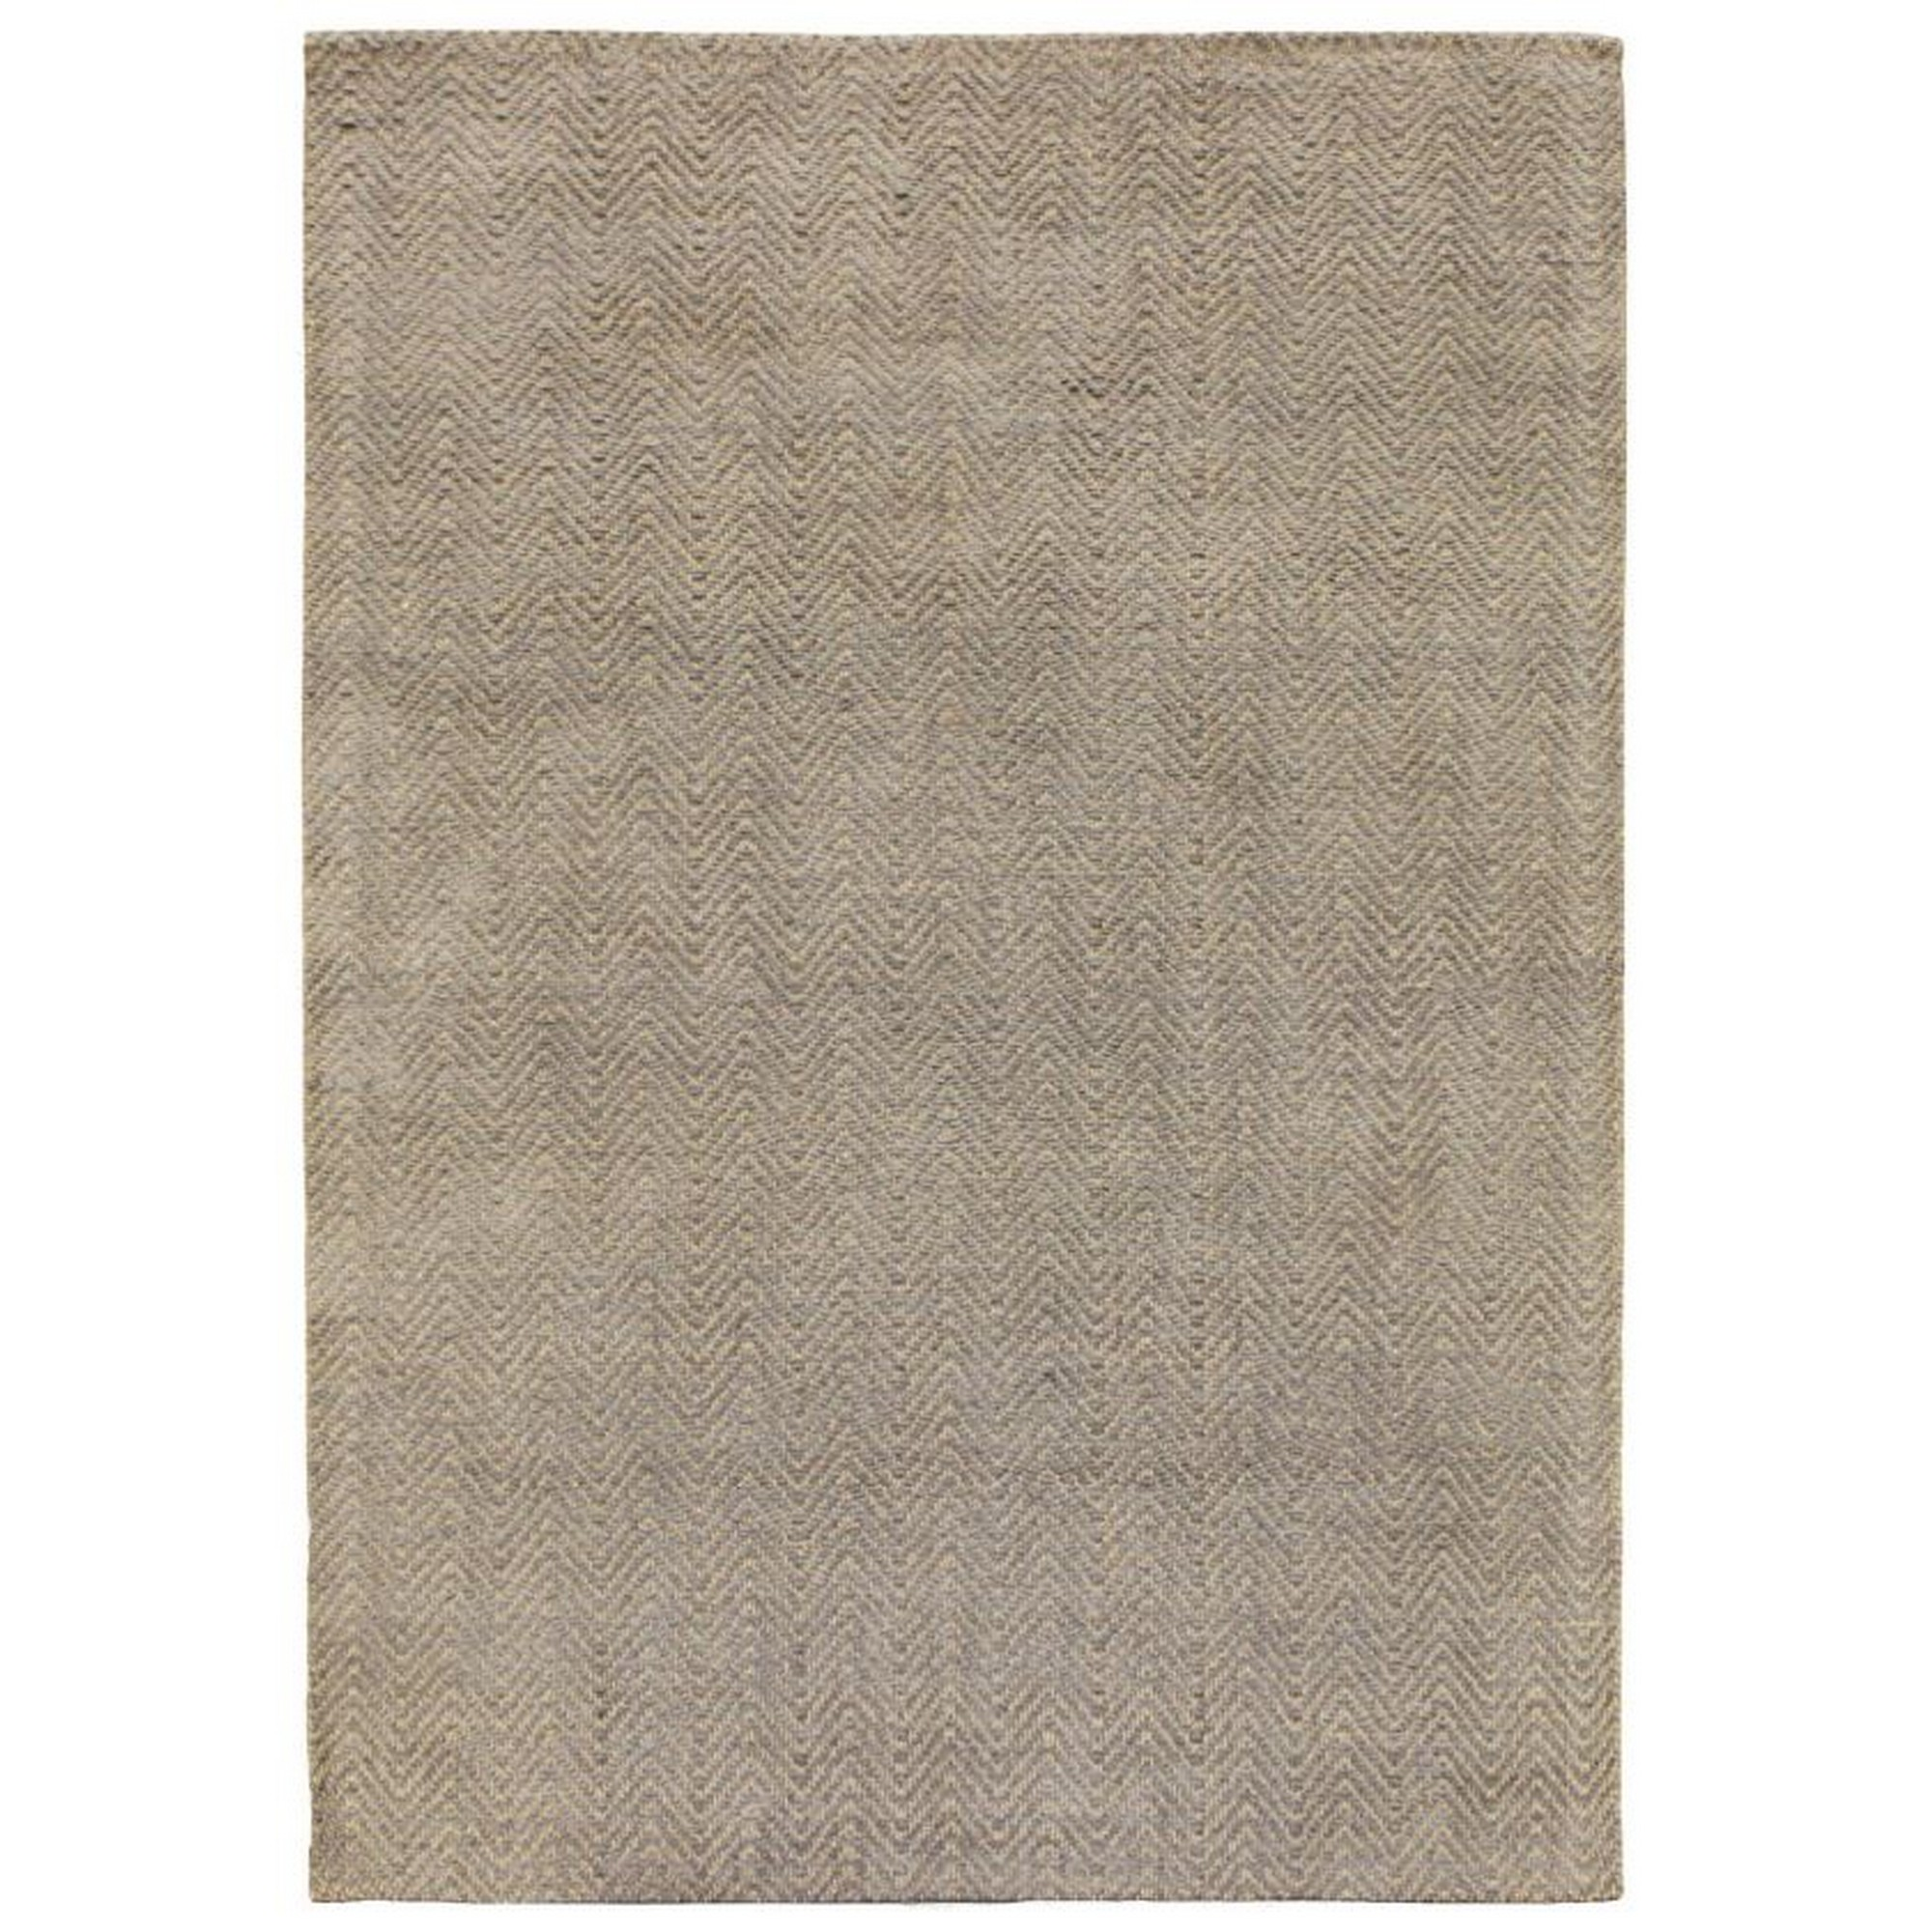 Ives Rugs in Silver